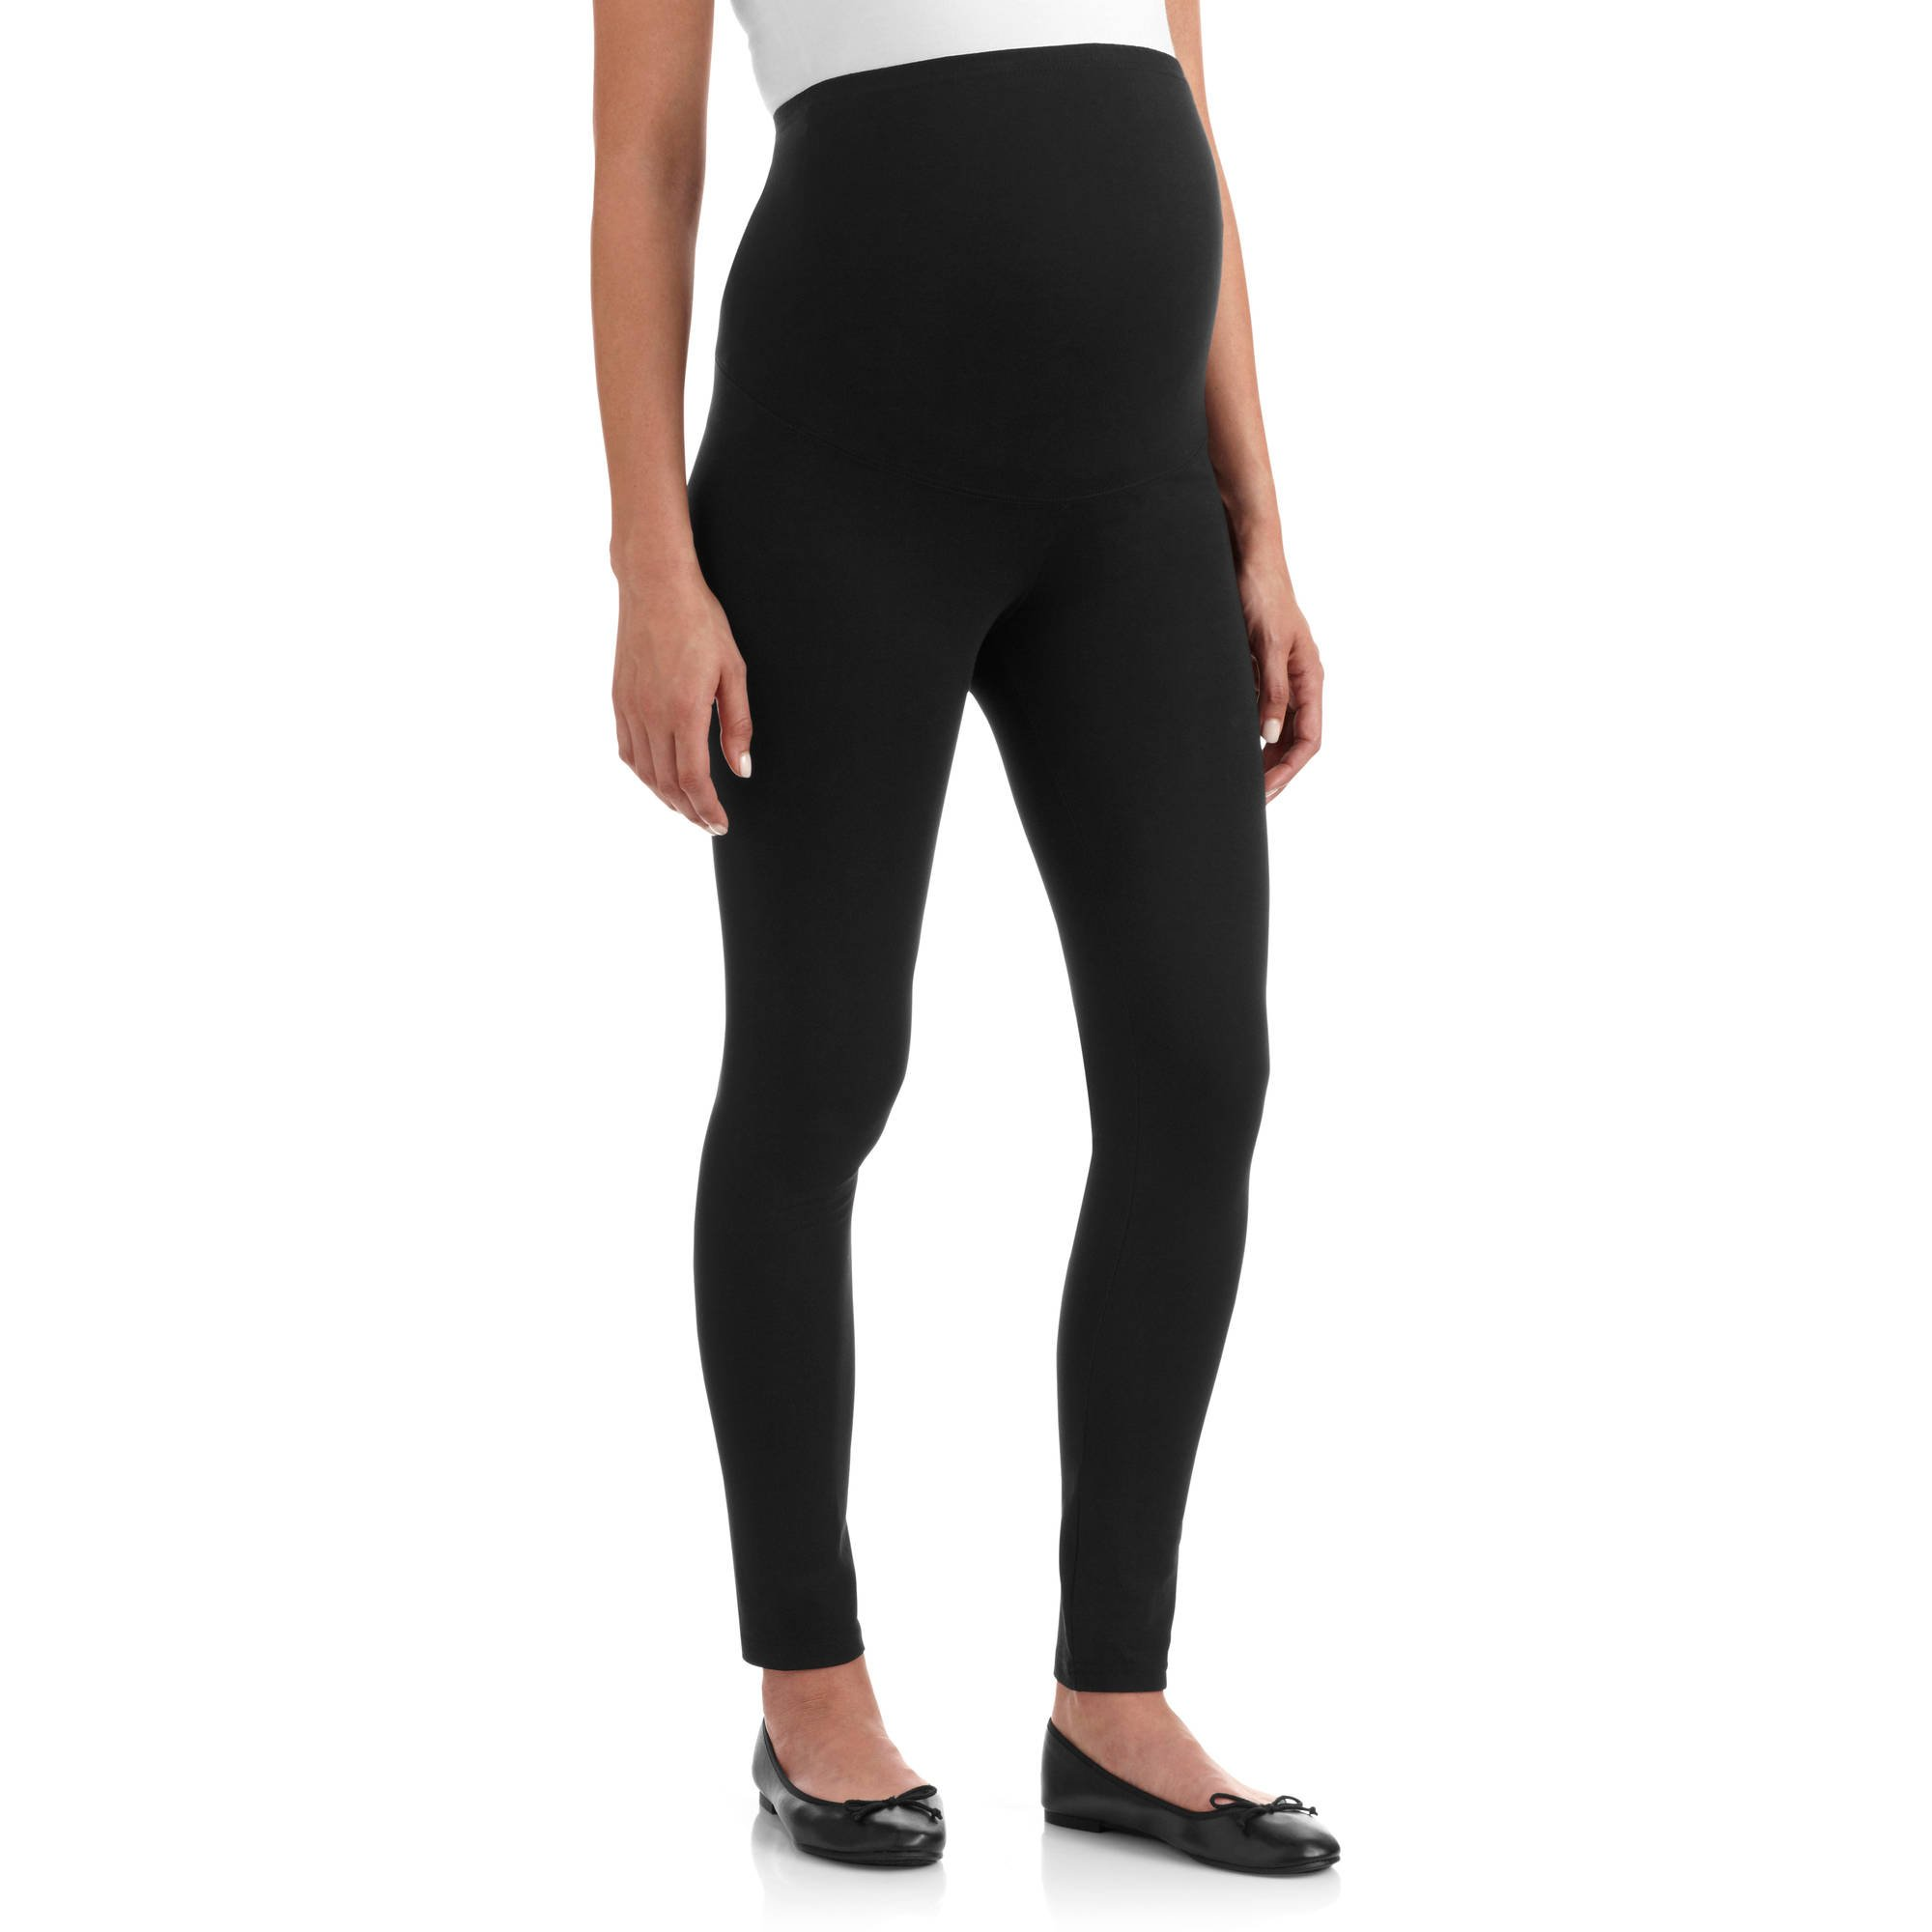 RUMOR HAS IT Maternity Over The Belly Super Soft Support Leggings (Small, Black)